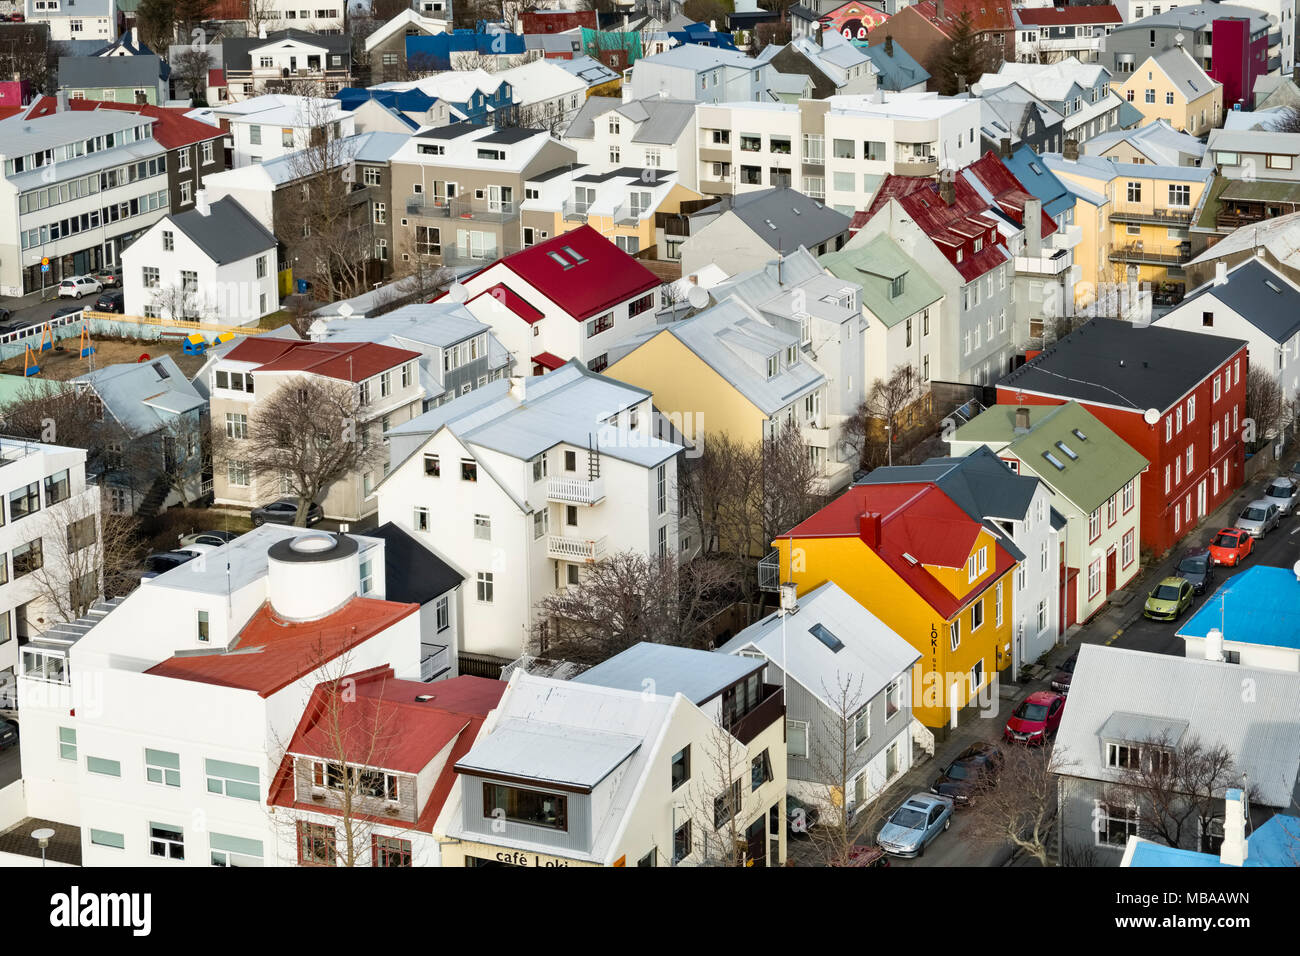 Reykjavik, Iceland. The view from the tower of Hallgrimskirkja church over the brightly painted houses in the centre of the city - Stock Image